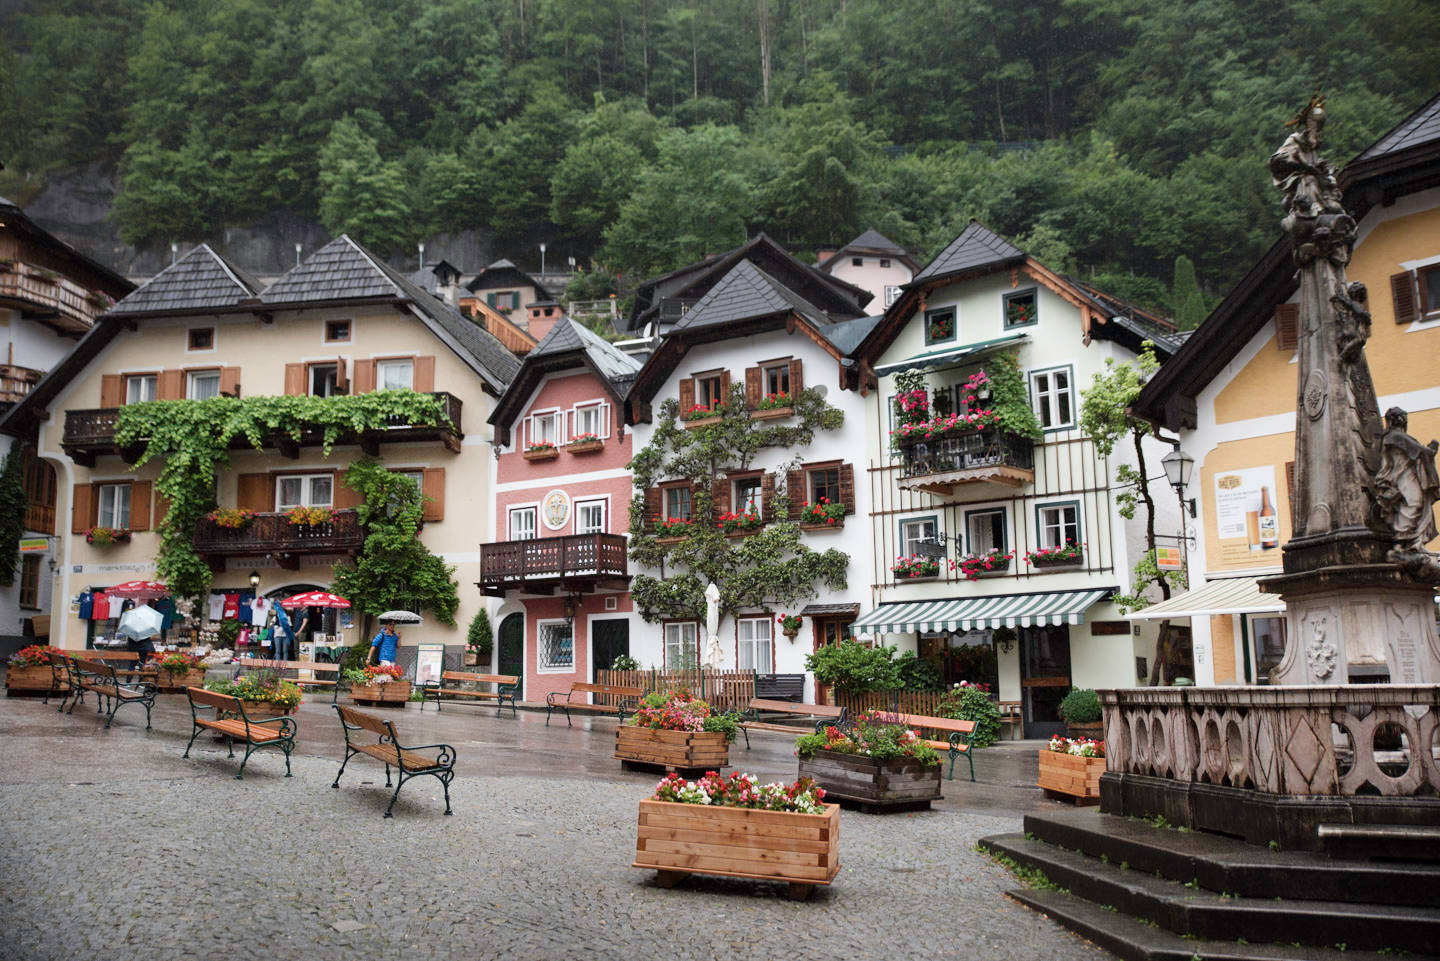 Blog-Mode-And-The-City-Lifestyle-Roadtrip-Allemagne-Autriche17